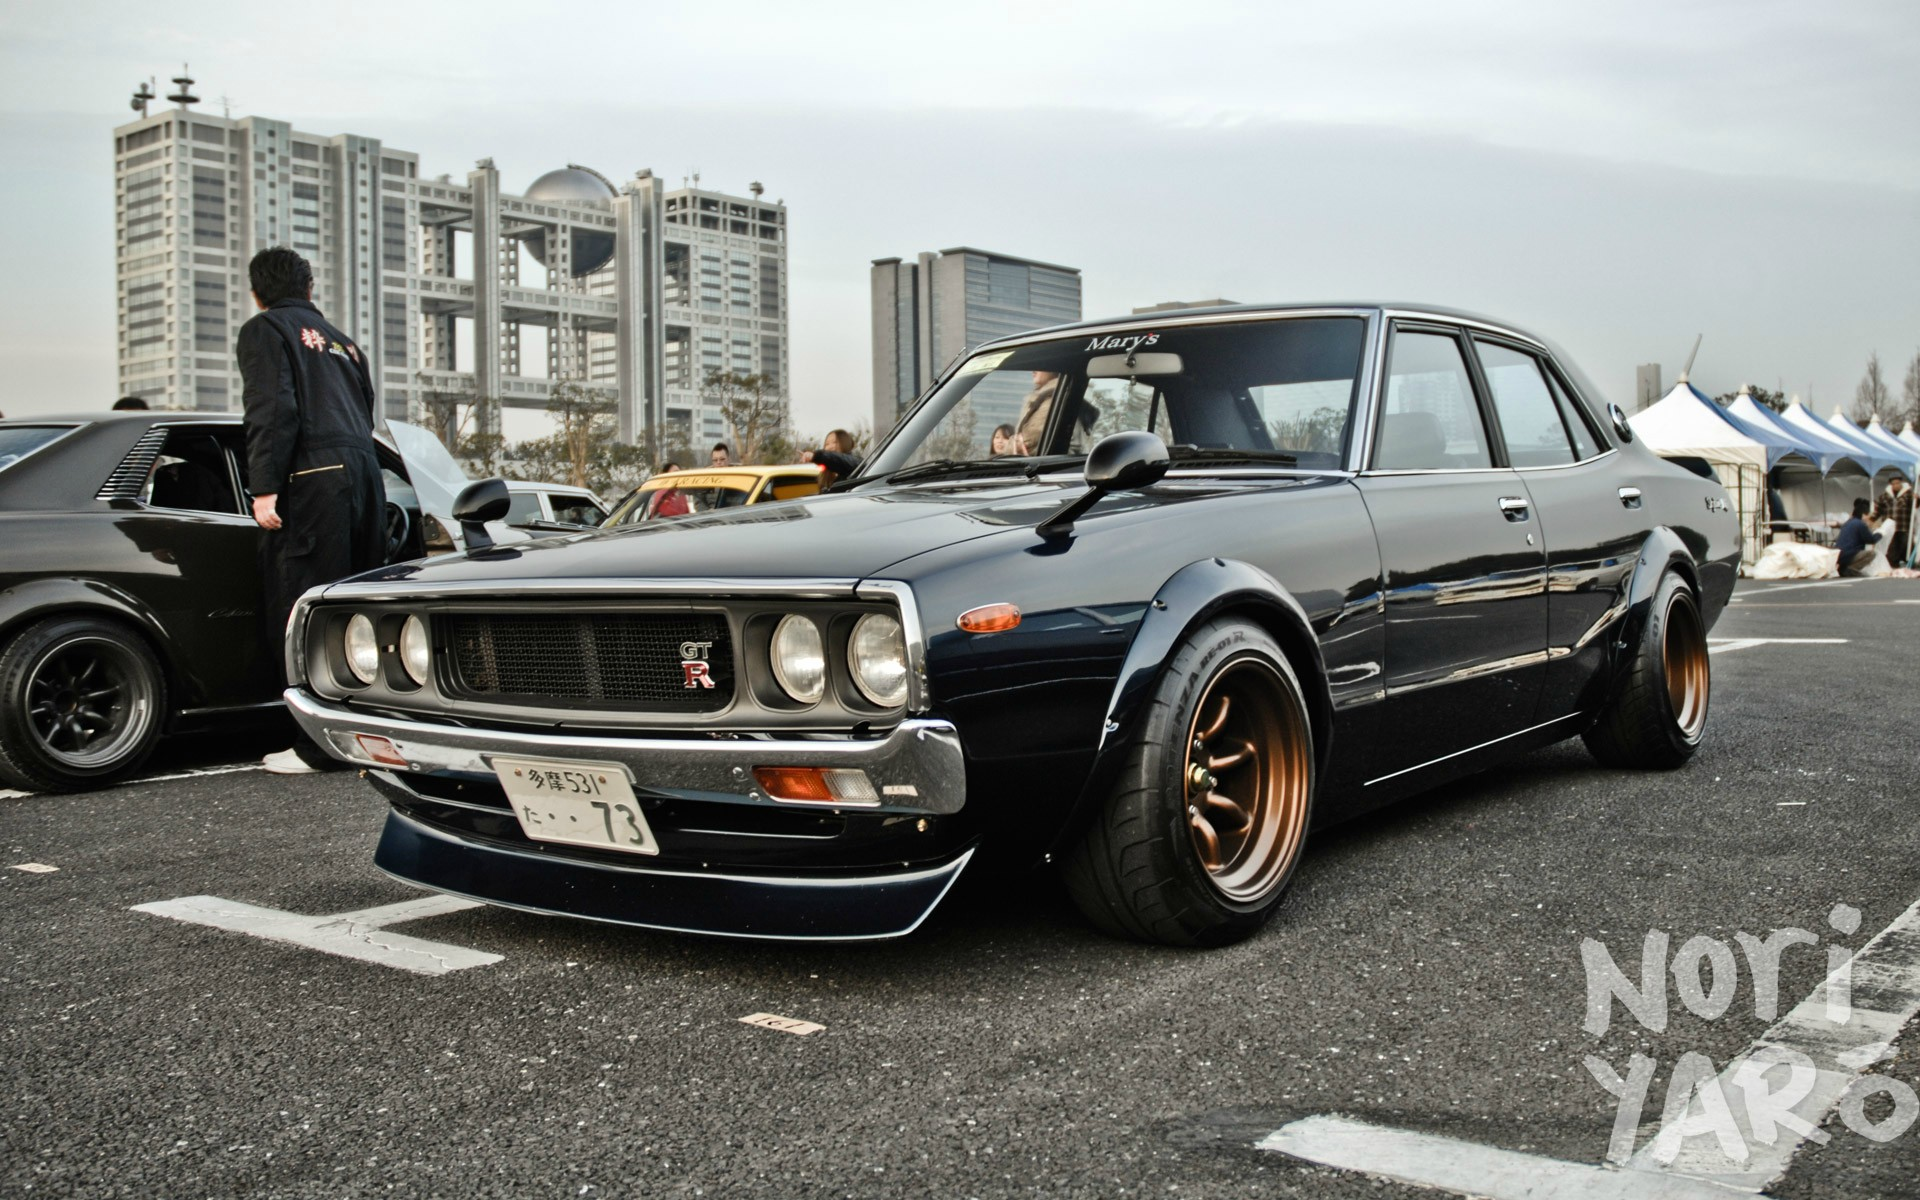 1920x1200 - Datsun Wallpapers 8